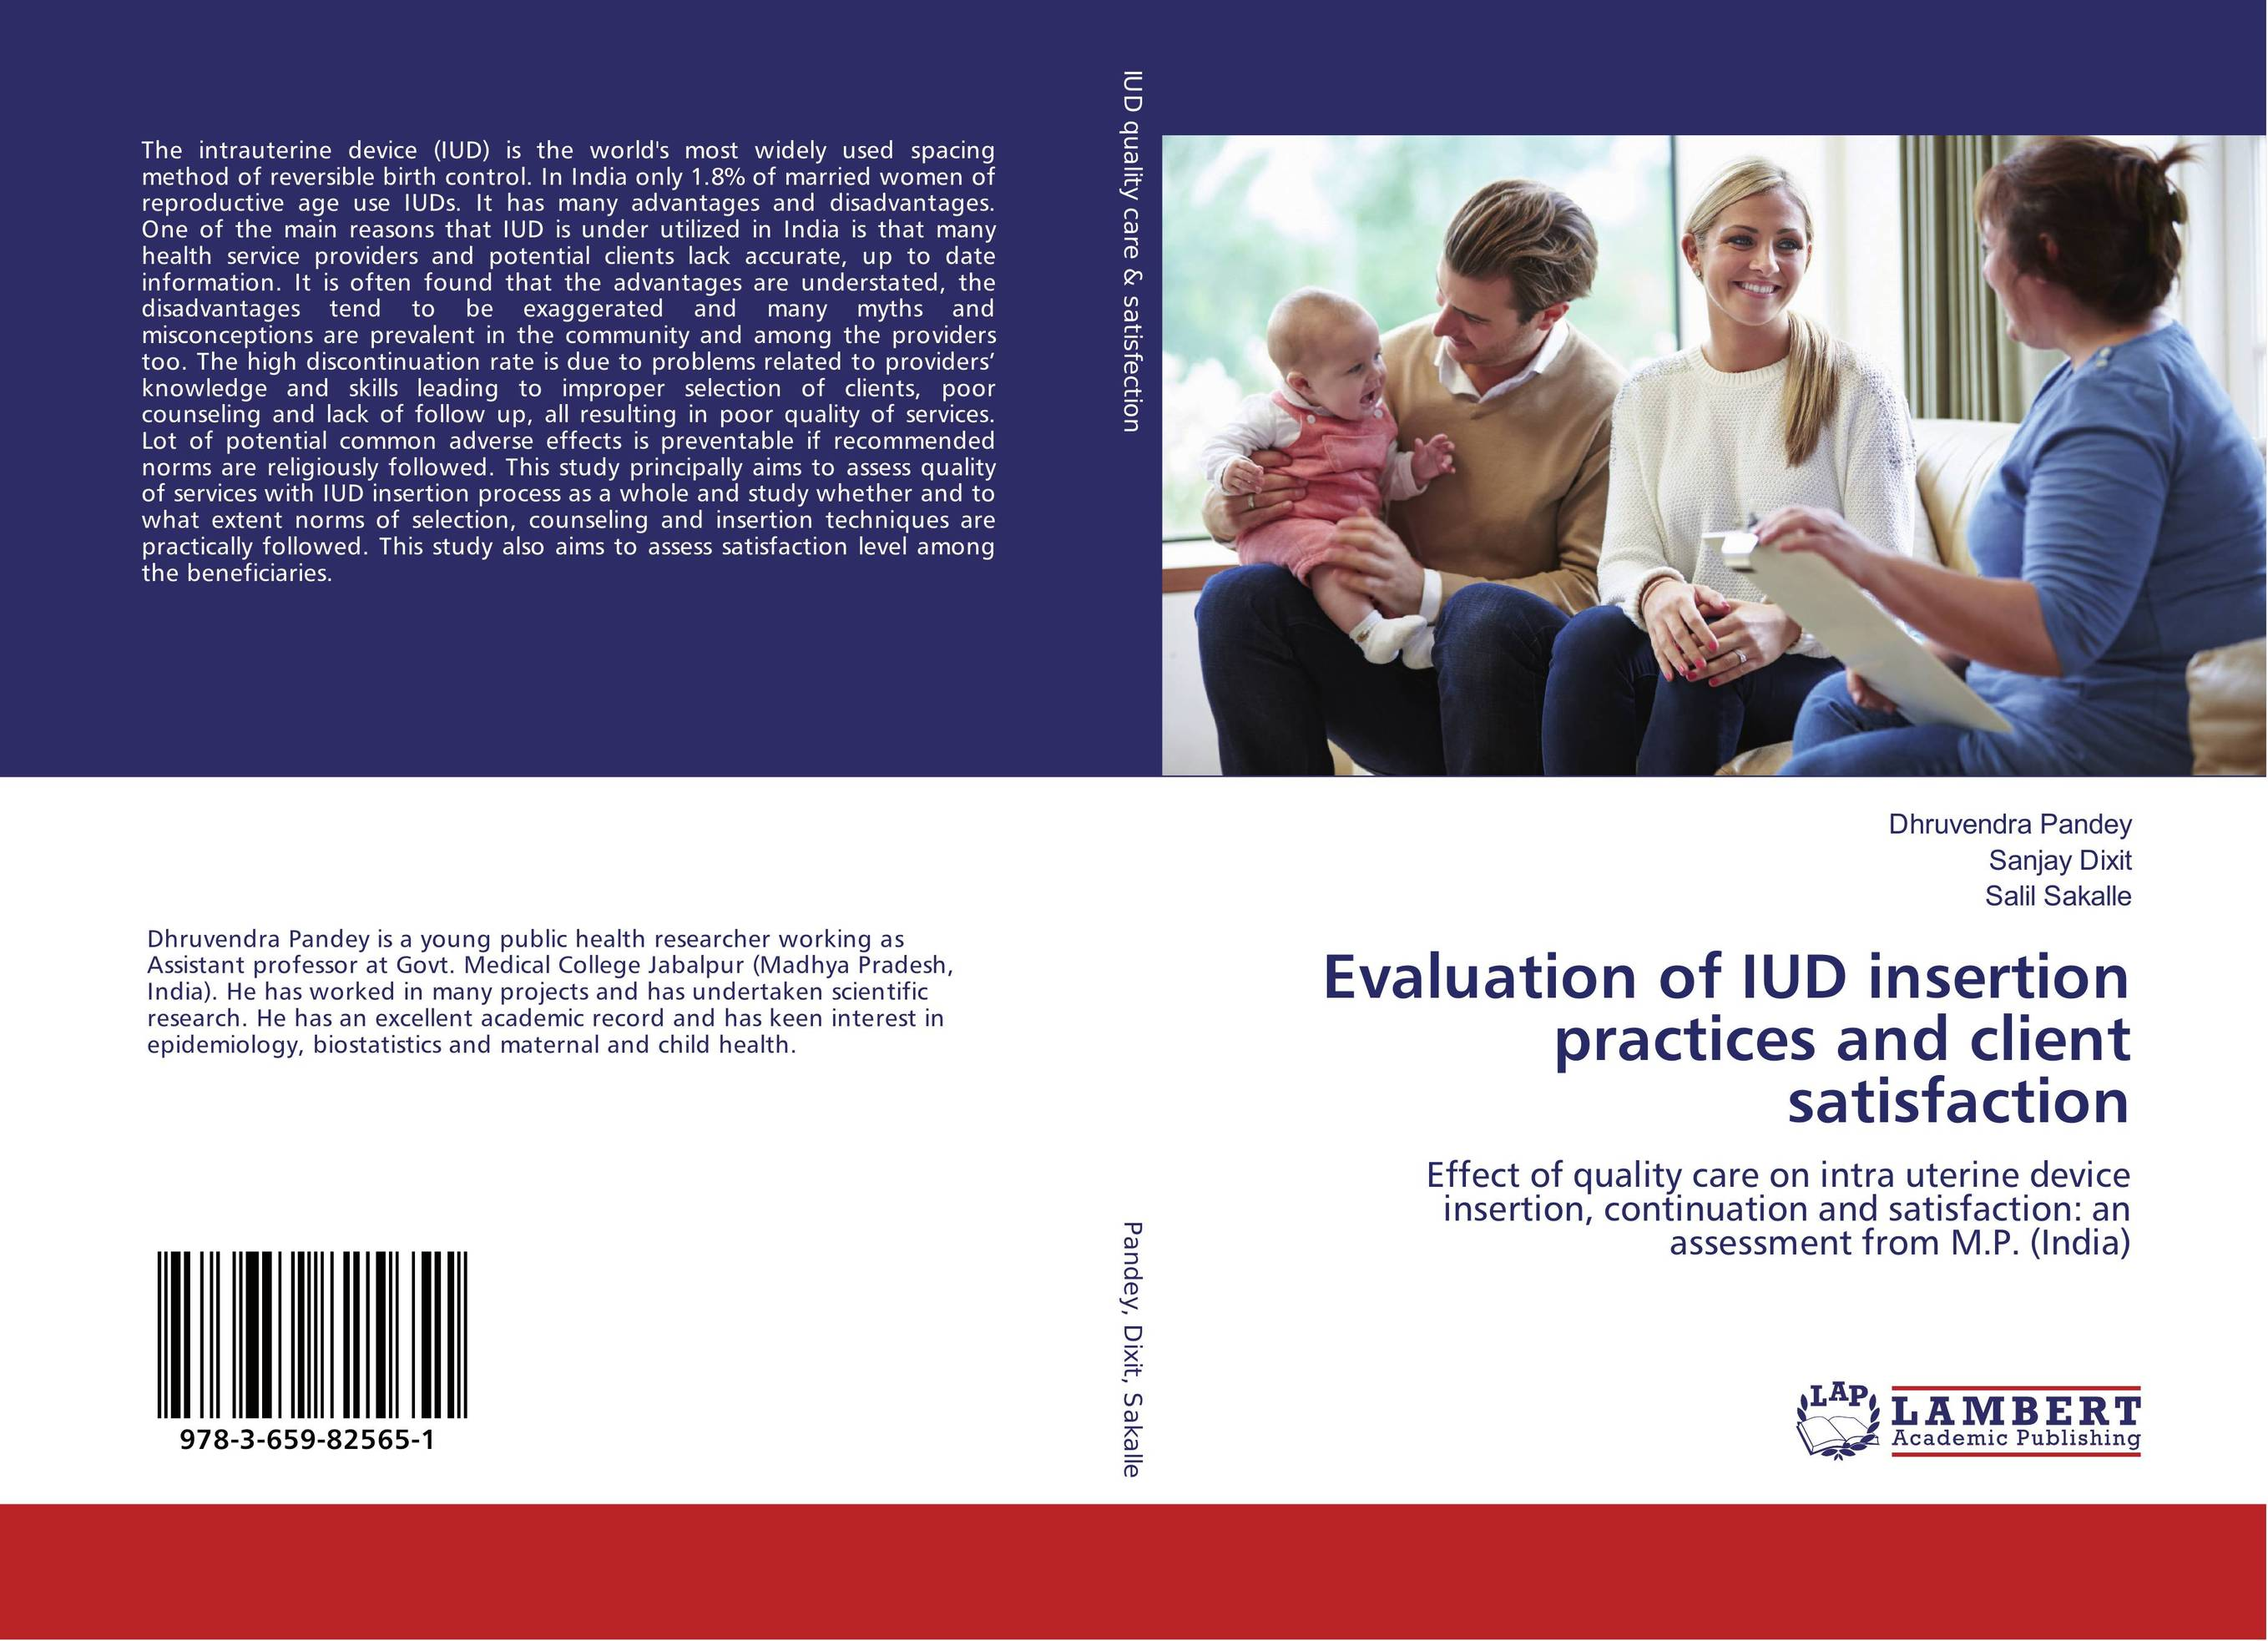 Evaluation of IUD insertion practices and client satisfaction